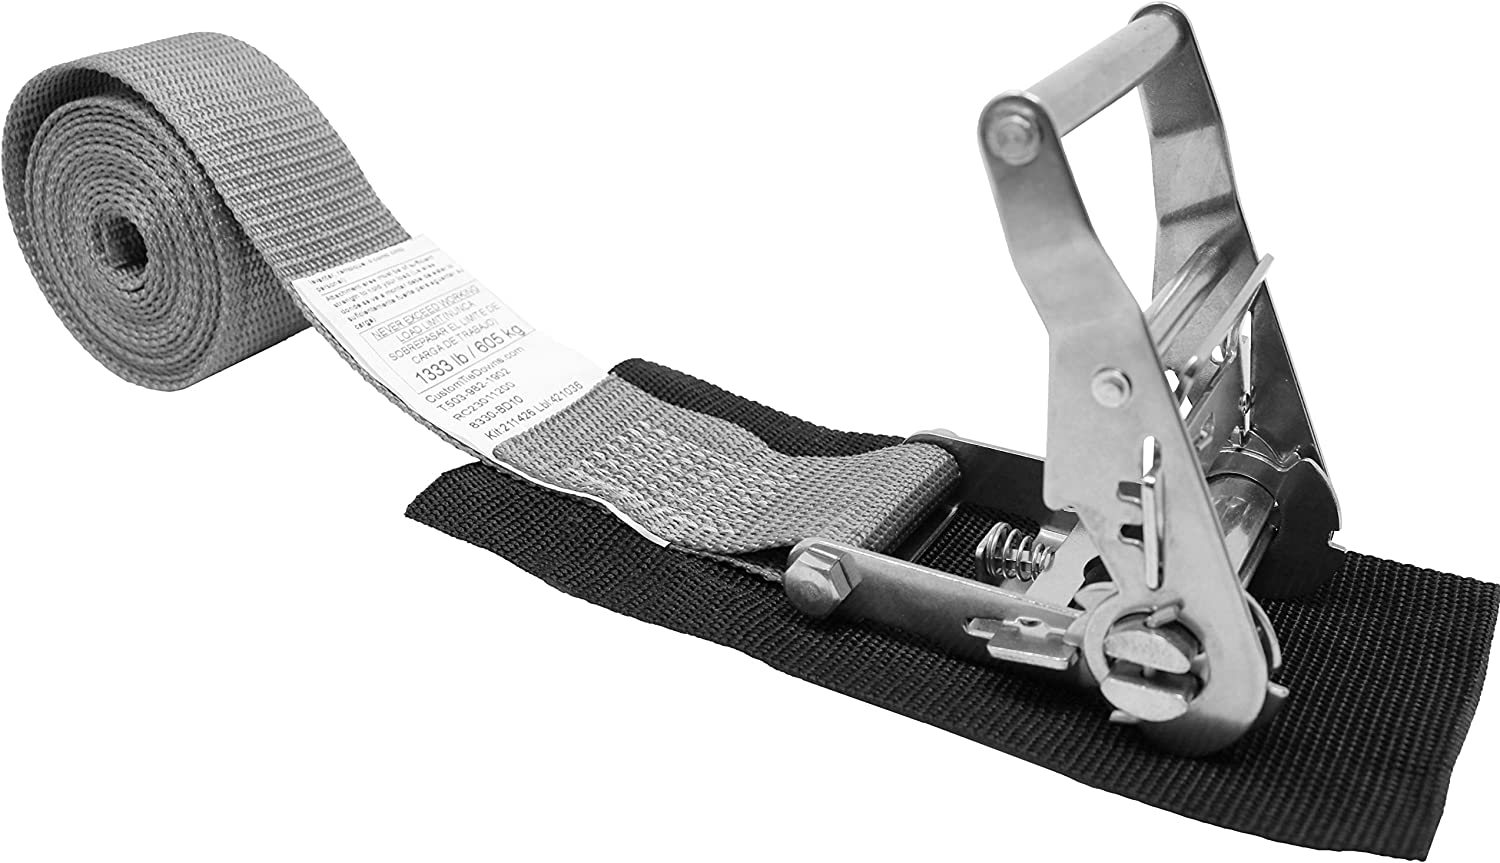 Total Strap Length 10 Ft 2 Inch Endless Loop Ratchet Strap Stainless Ratchet with Short Wide Handle Polyester Tie-Down Webbing. Endless Loop No Hooks Protective Pad Under Buckle